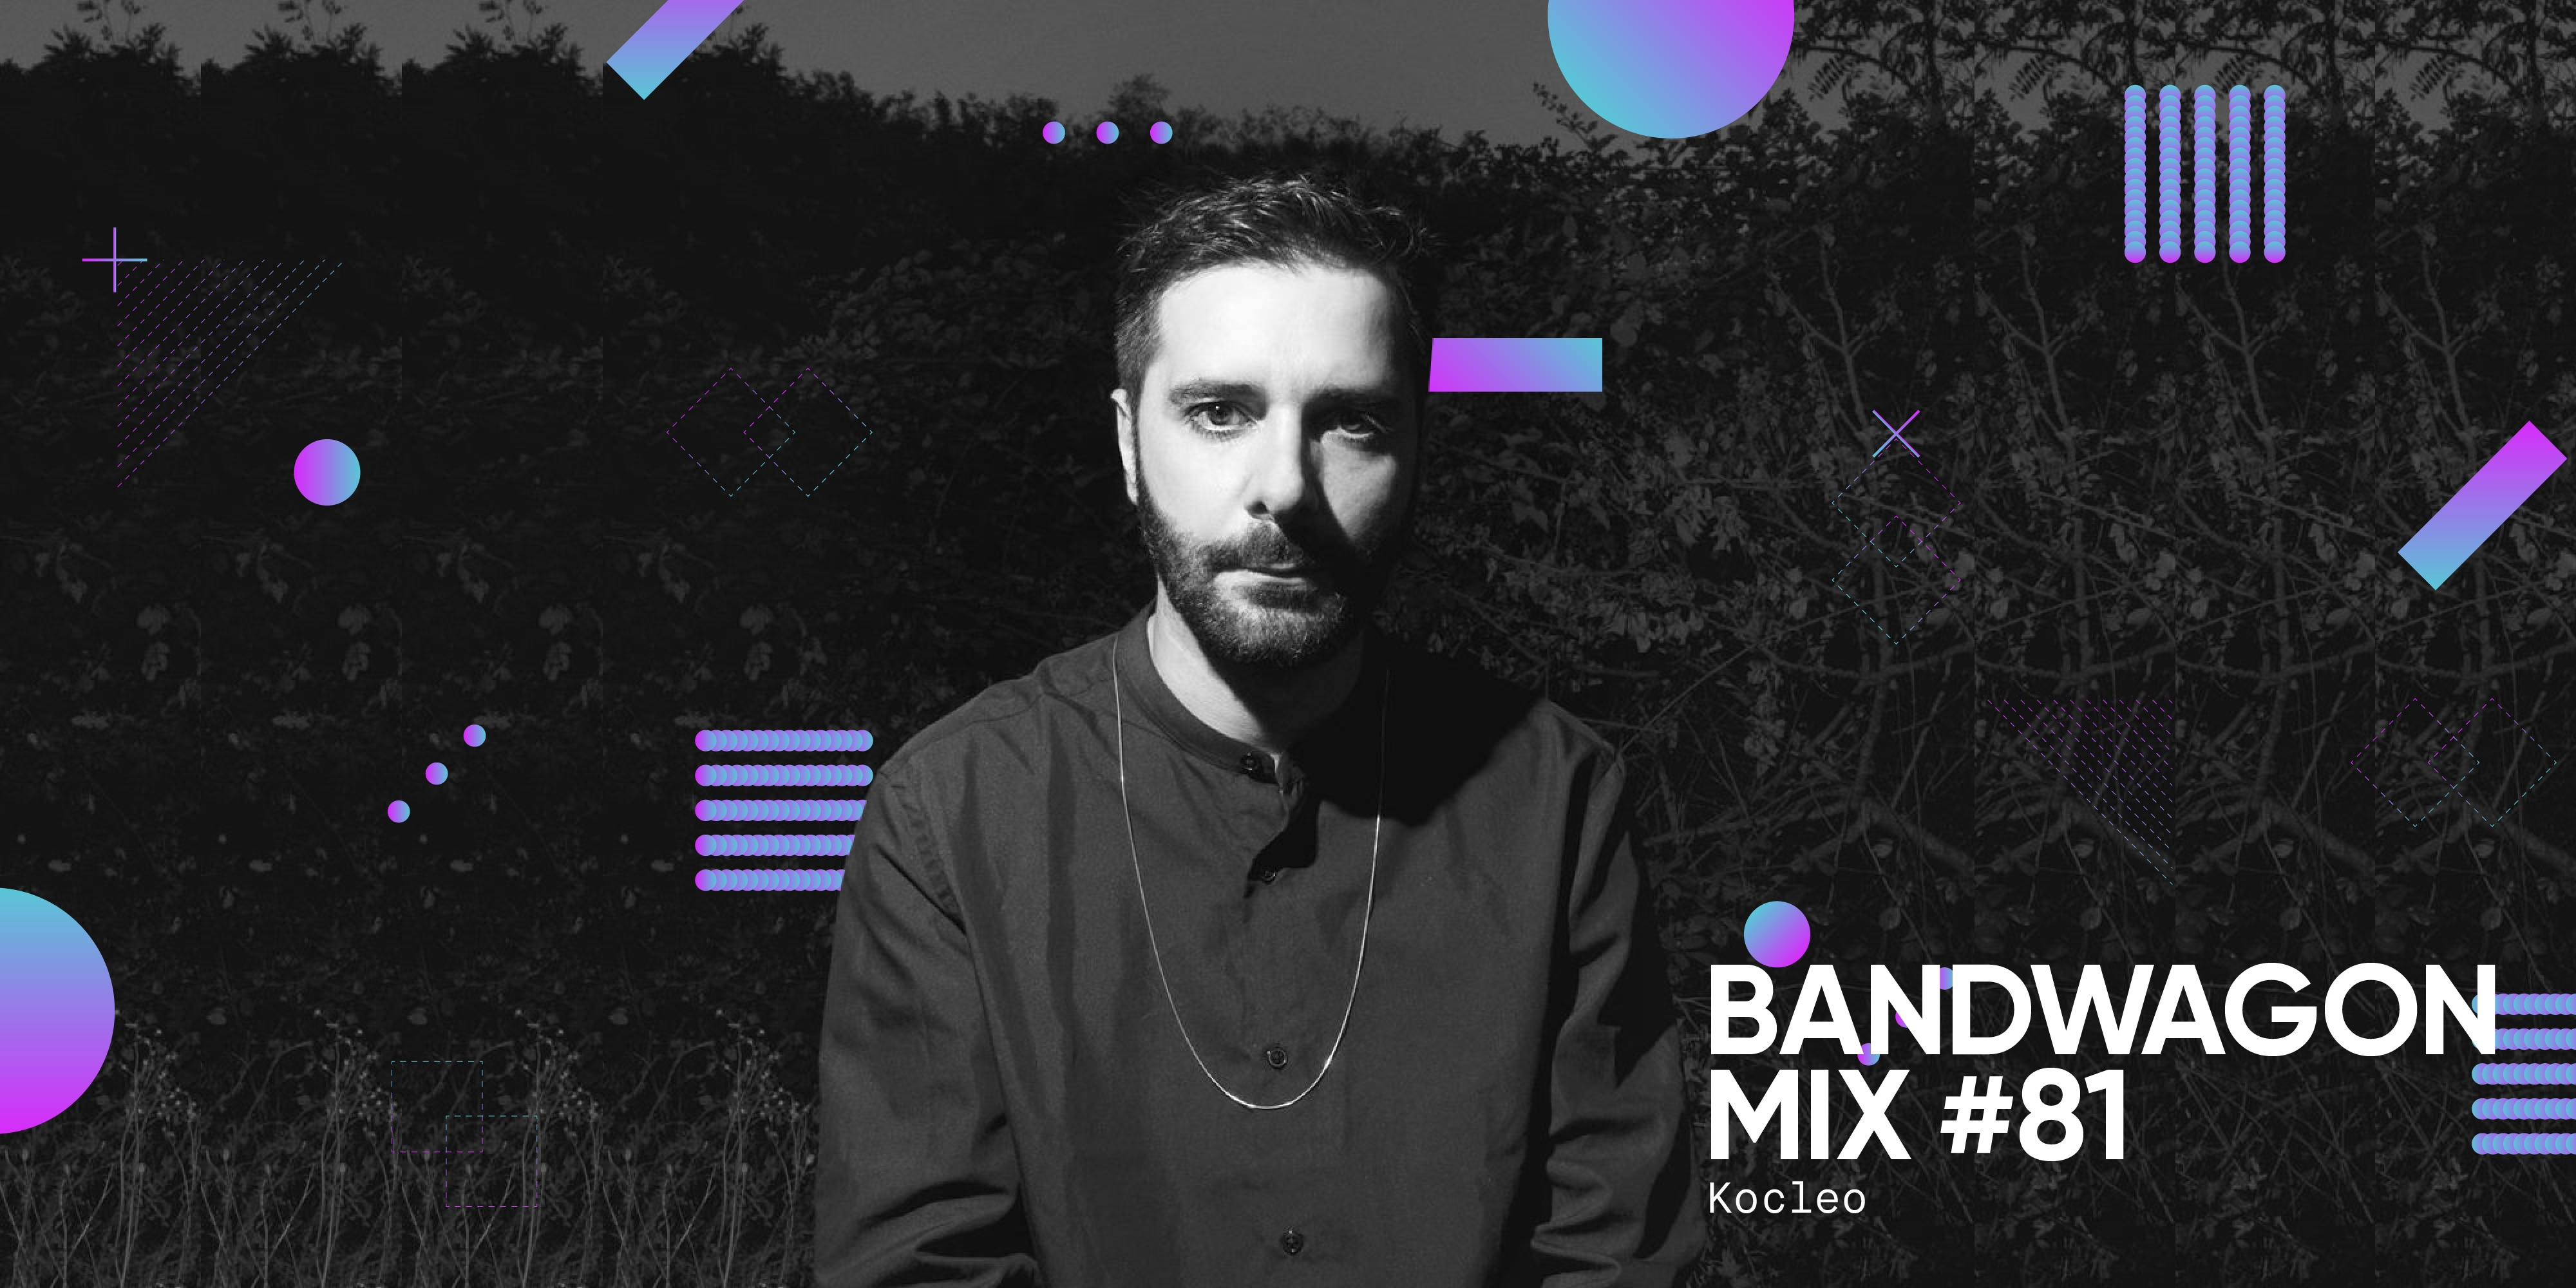 Bandwagon Mix #81: Kocleo (Integrity Records)